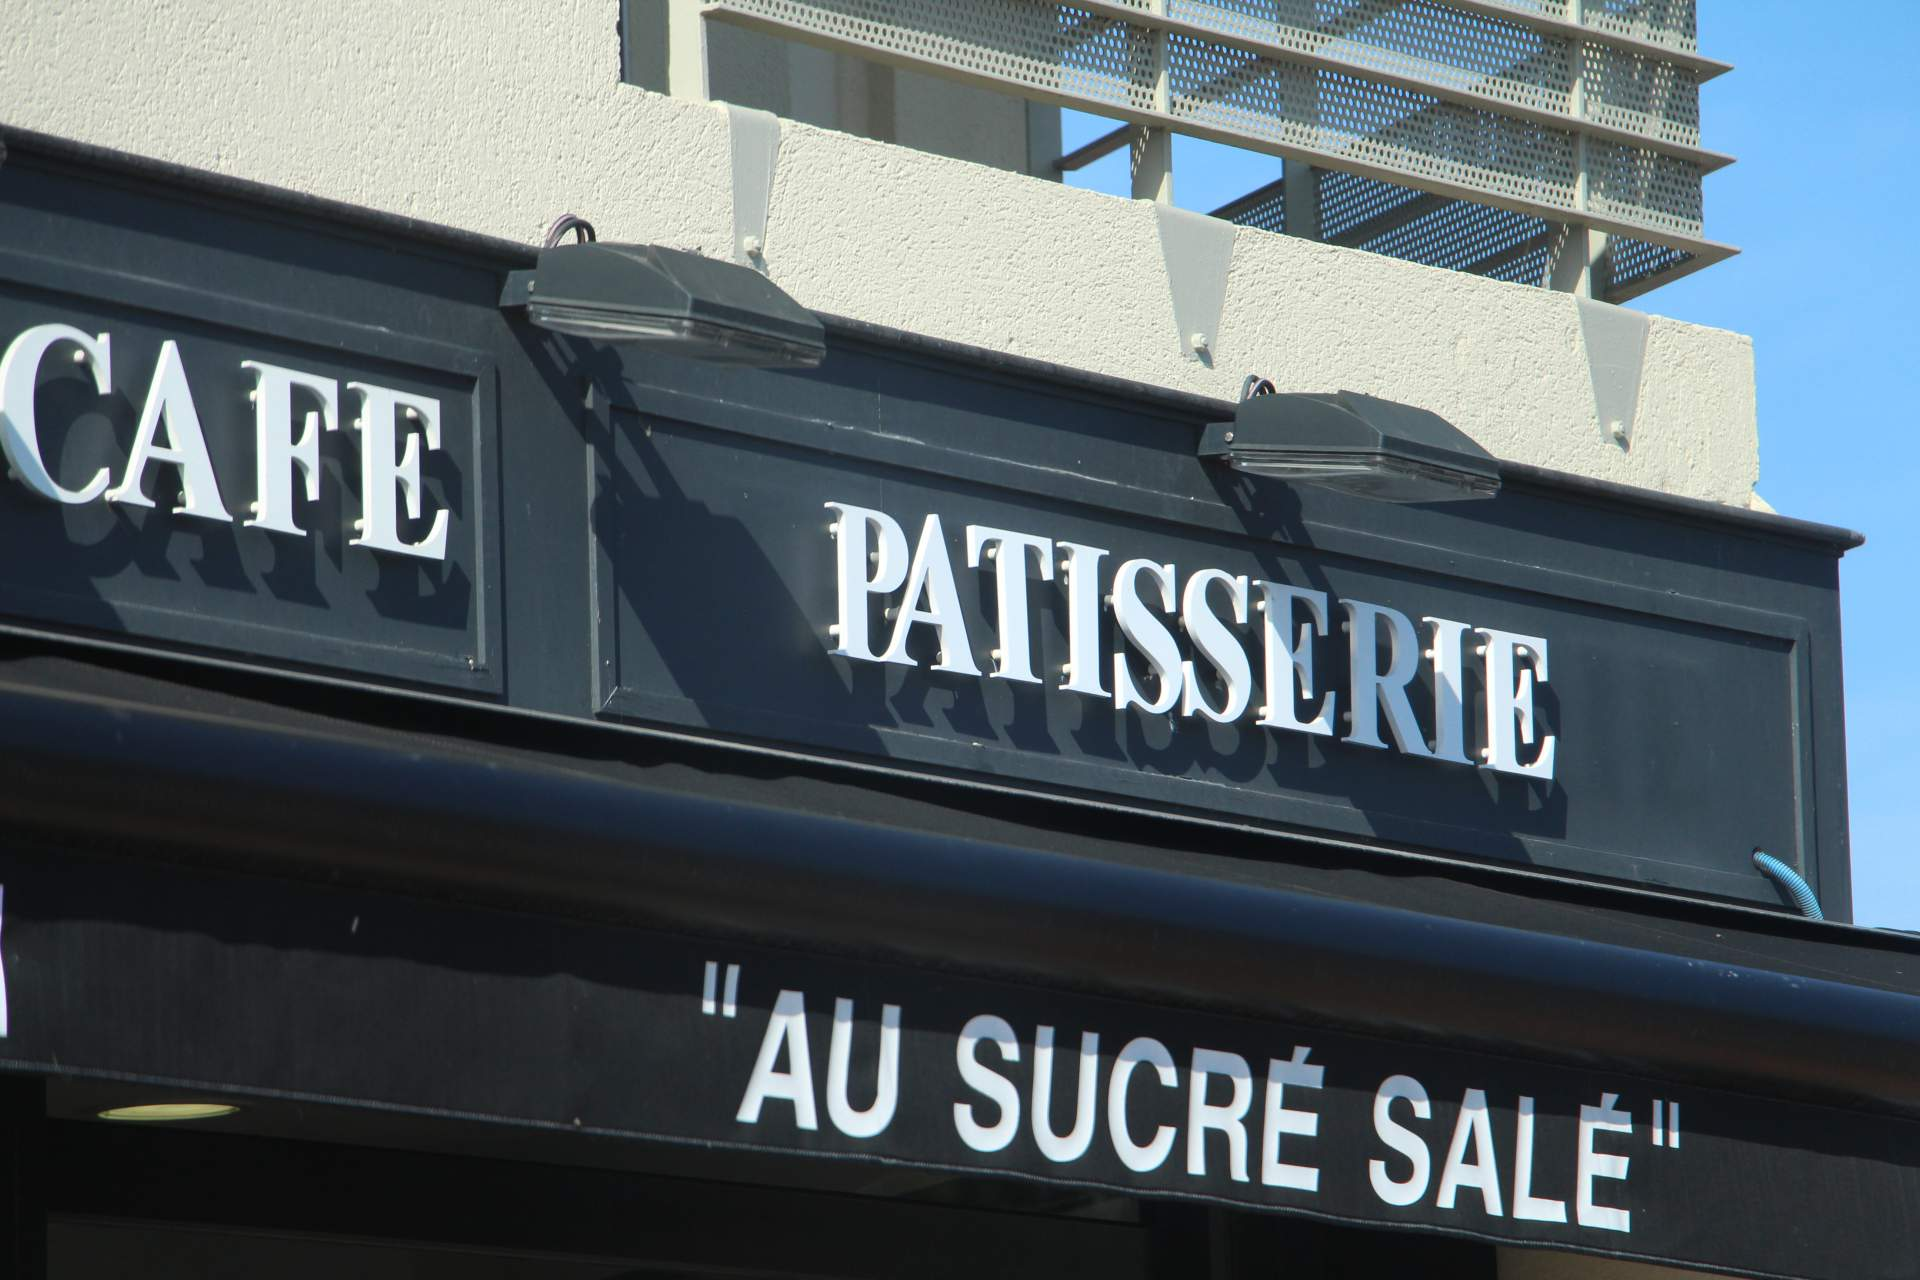 Patisserie in Le Teich